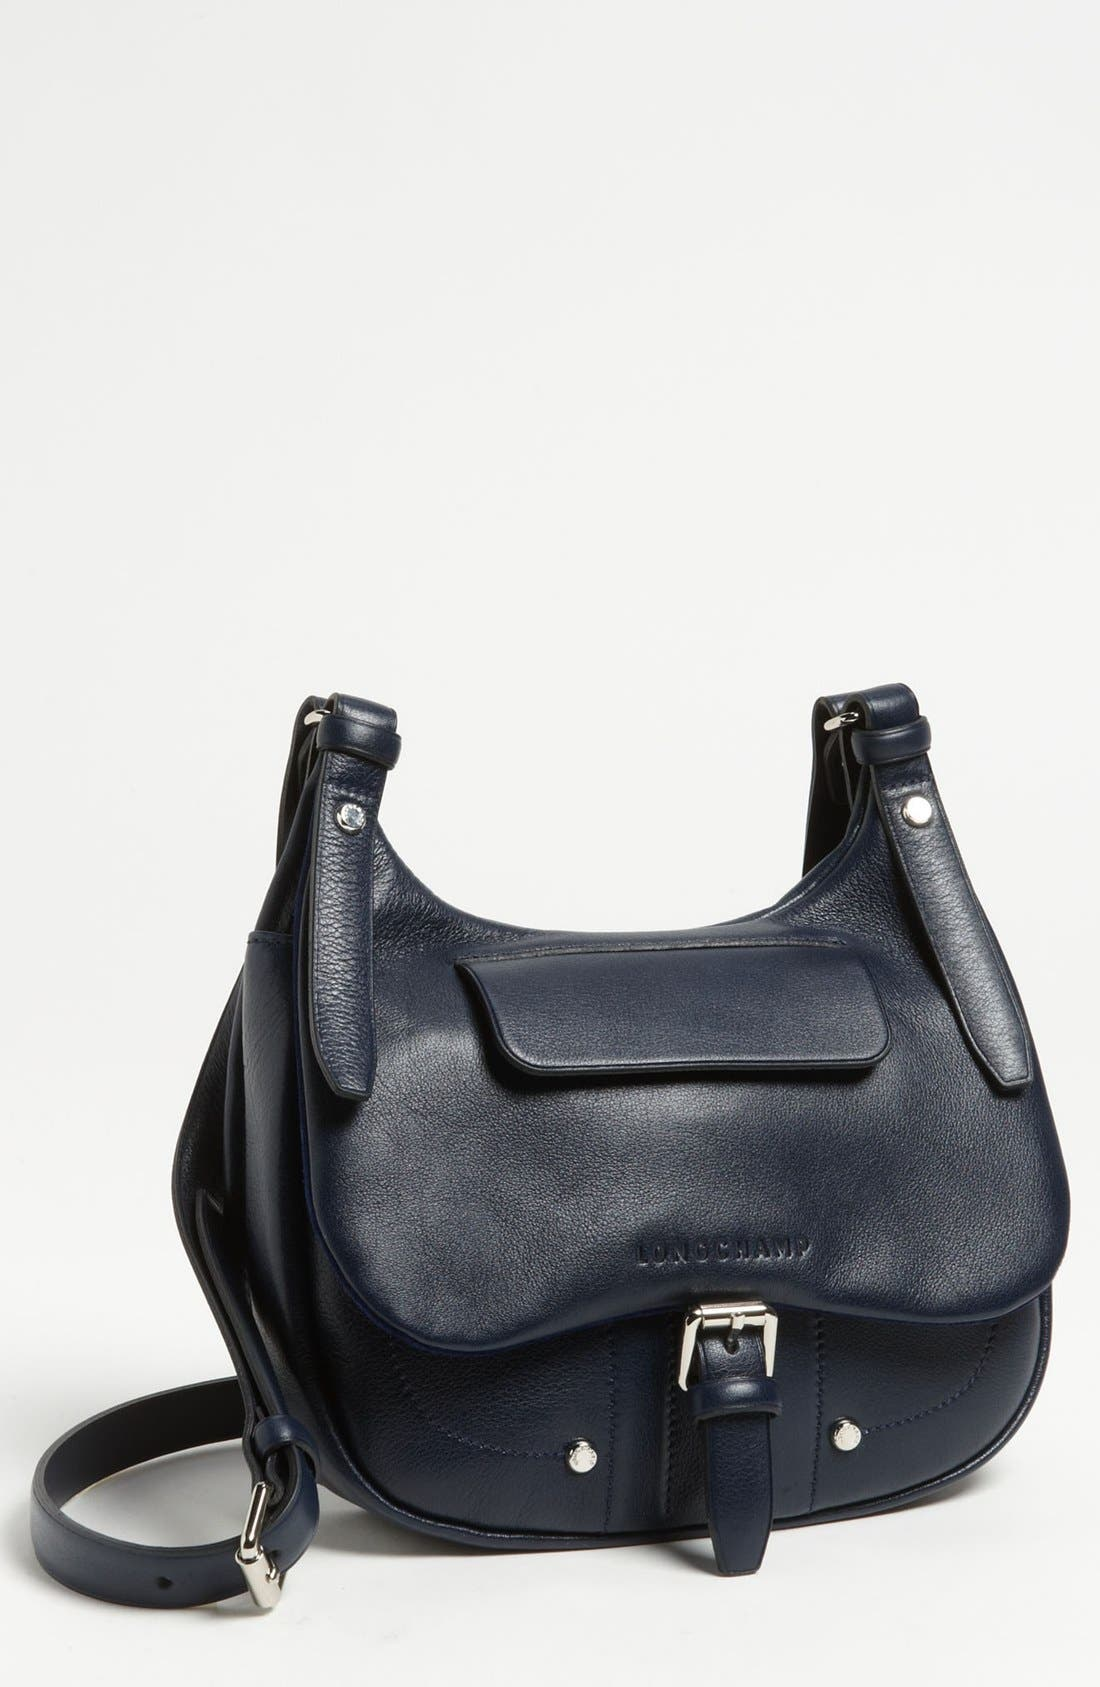 Main Image - Longchamp 'Balzane - Small' Crossbody Bag